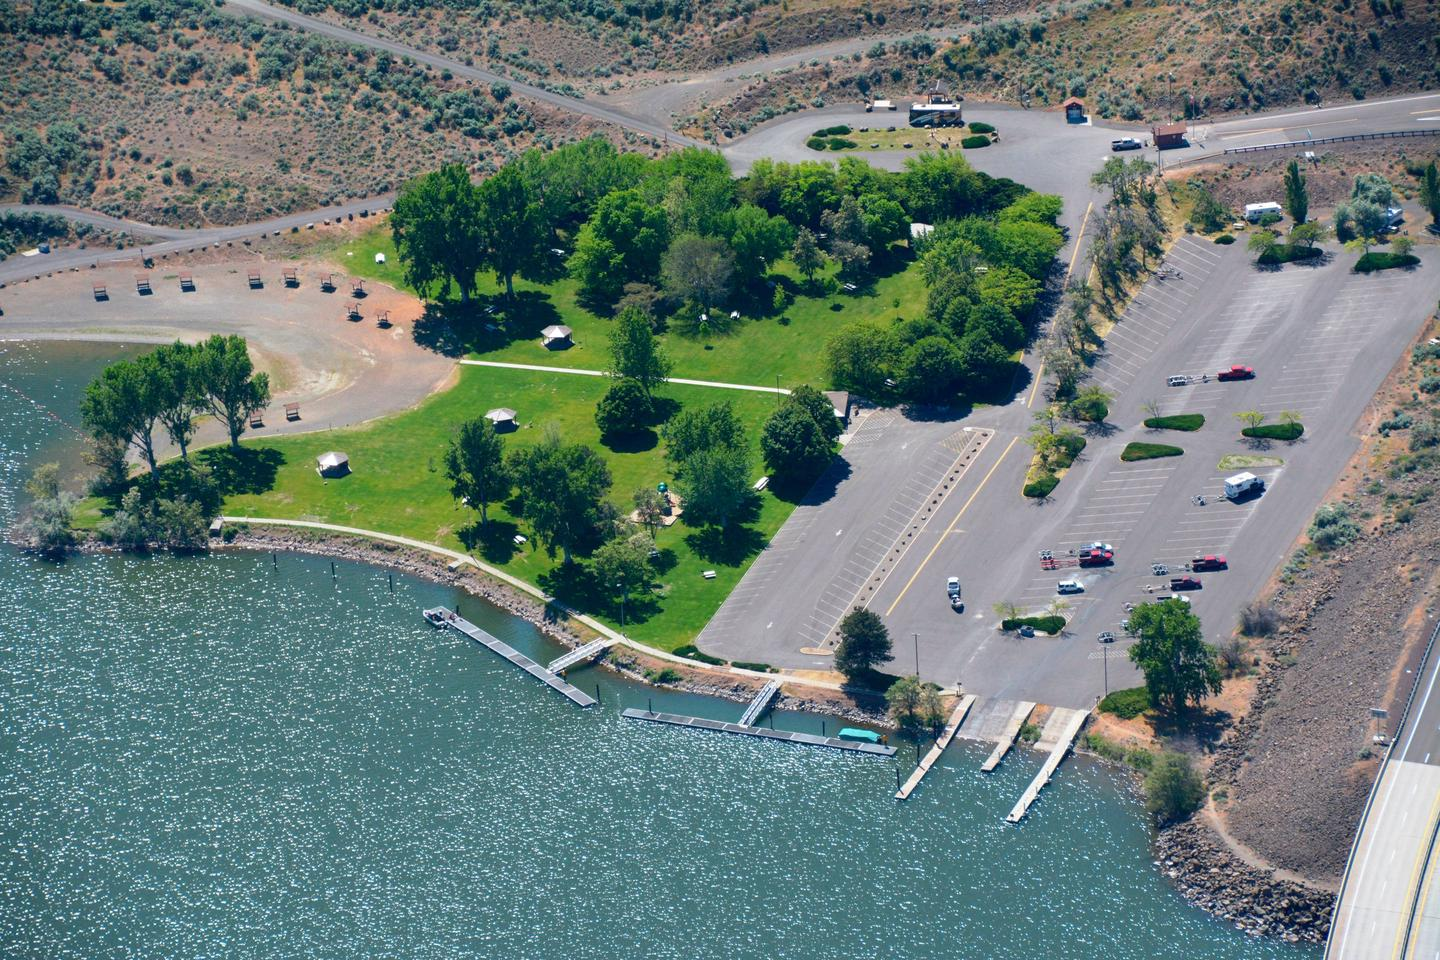 LePage Park Swim Beach, Tent Camping Area and Boat Ramp Facilities